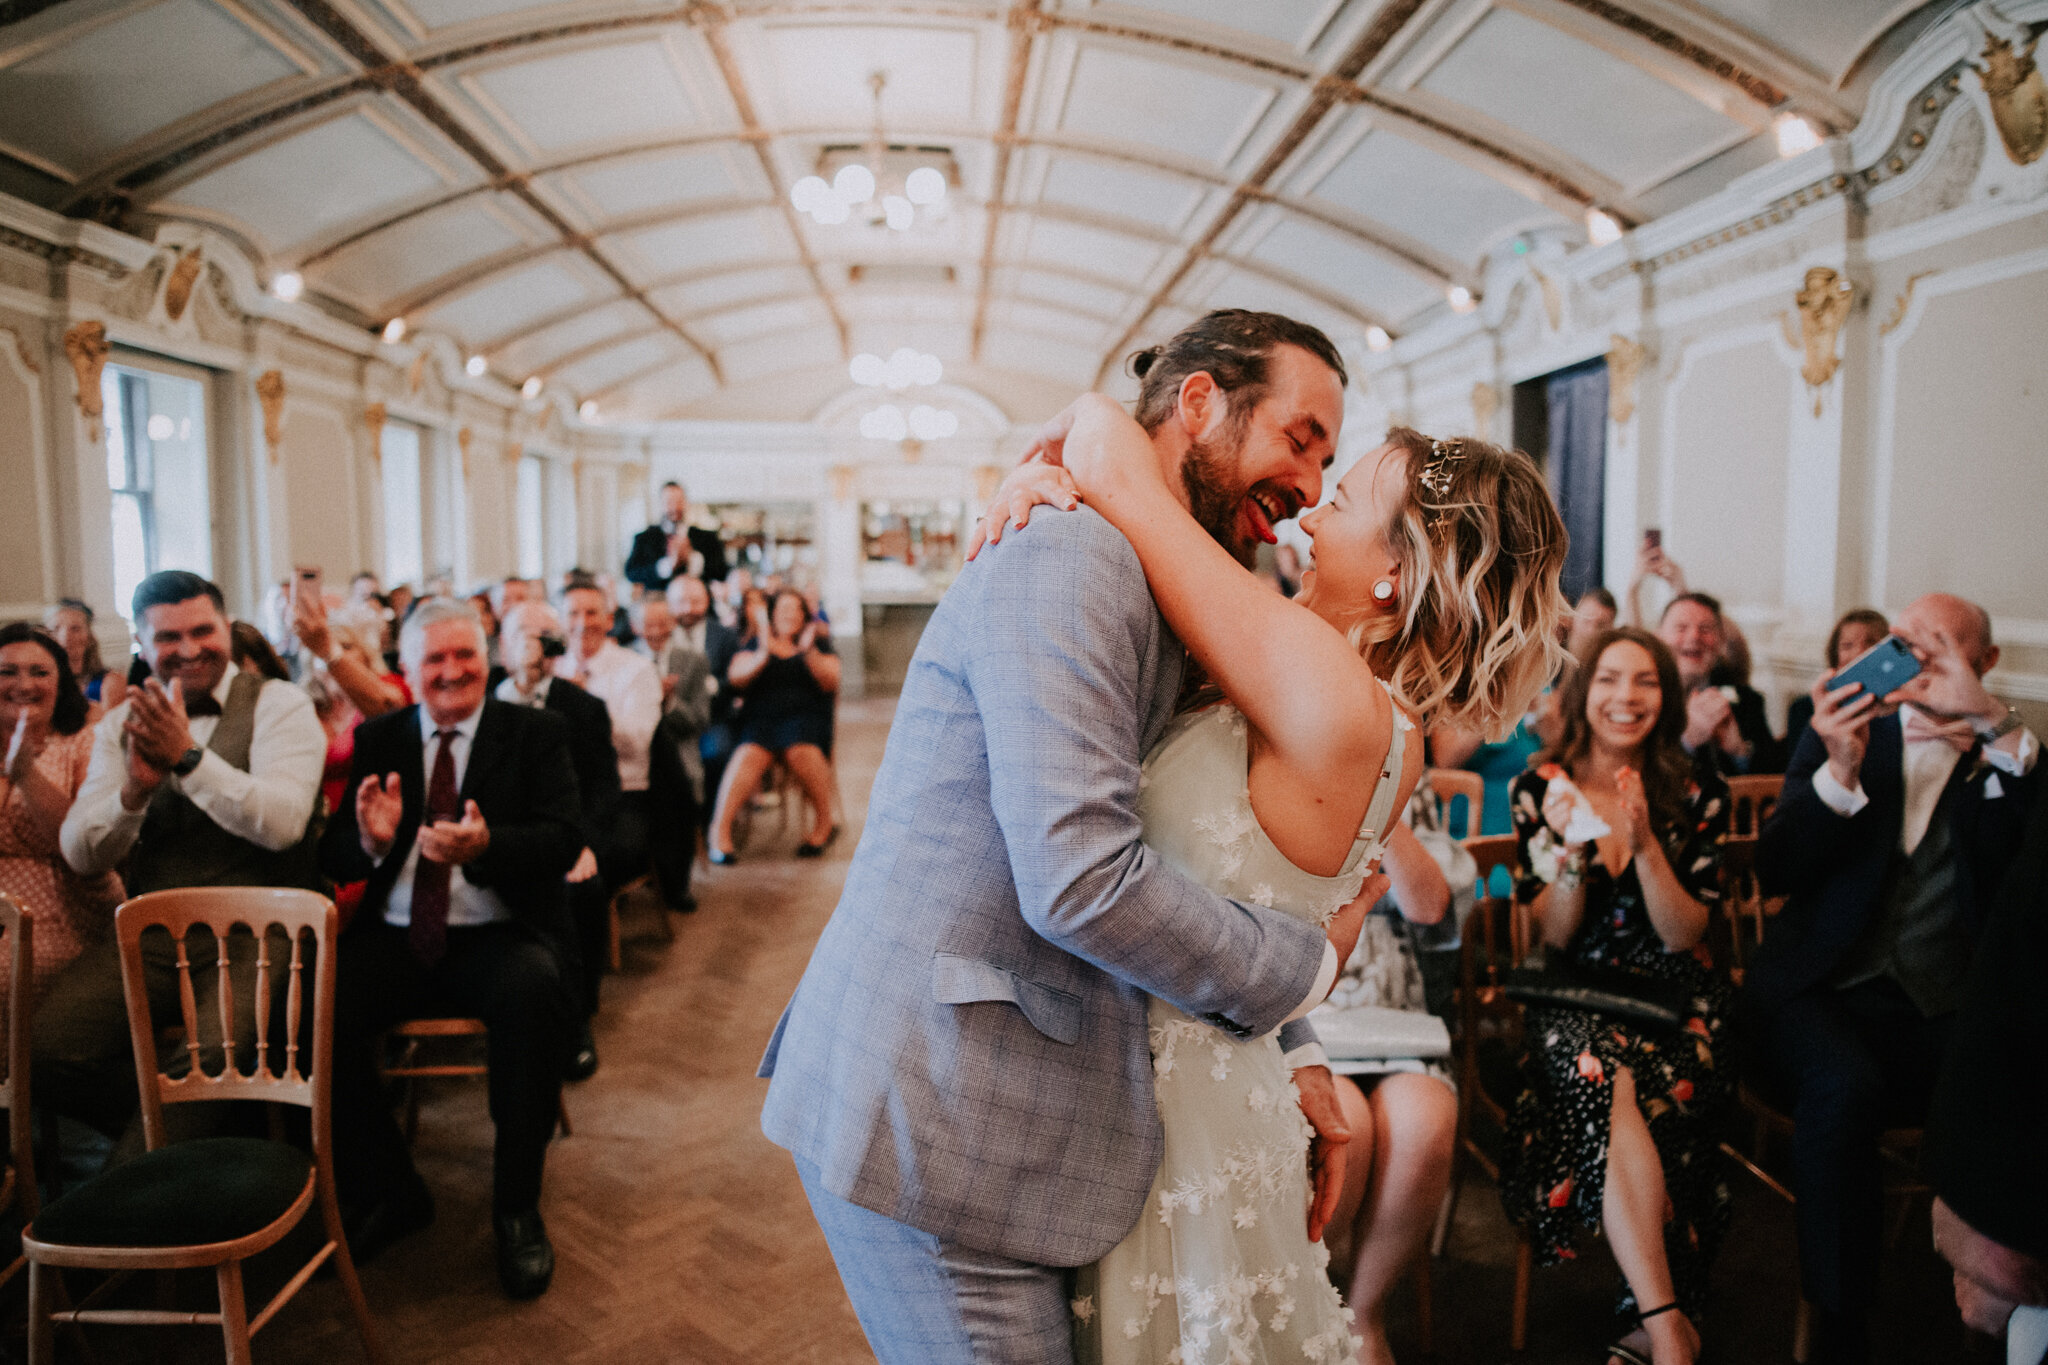 The first fun kiss as a husband and wife at an alternative wedding venue - Sloans